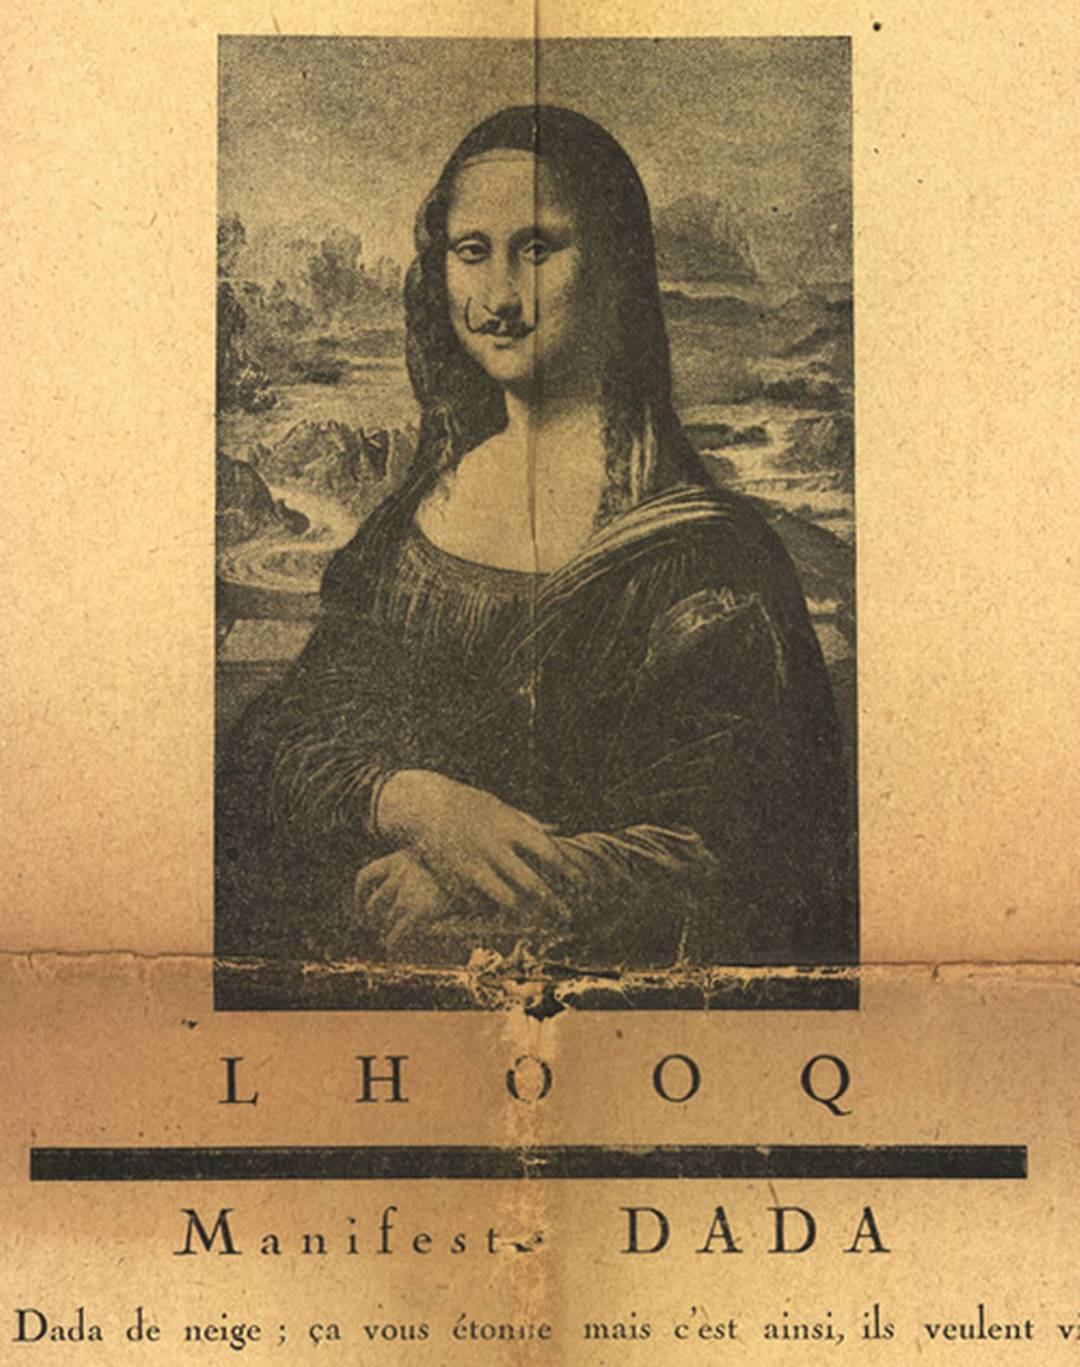 The Mona Lisa as an art example in a TOK essay is a cliche. Duchamp's 1919 Dadaist version L.H.O.O.Q. is not. The title is an obscene pun in French:  Elle a chaud au cul.